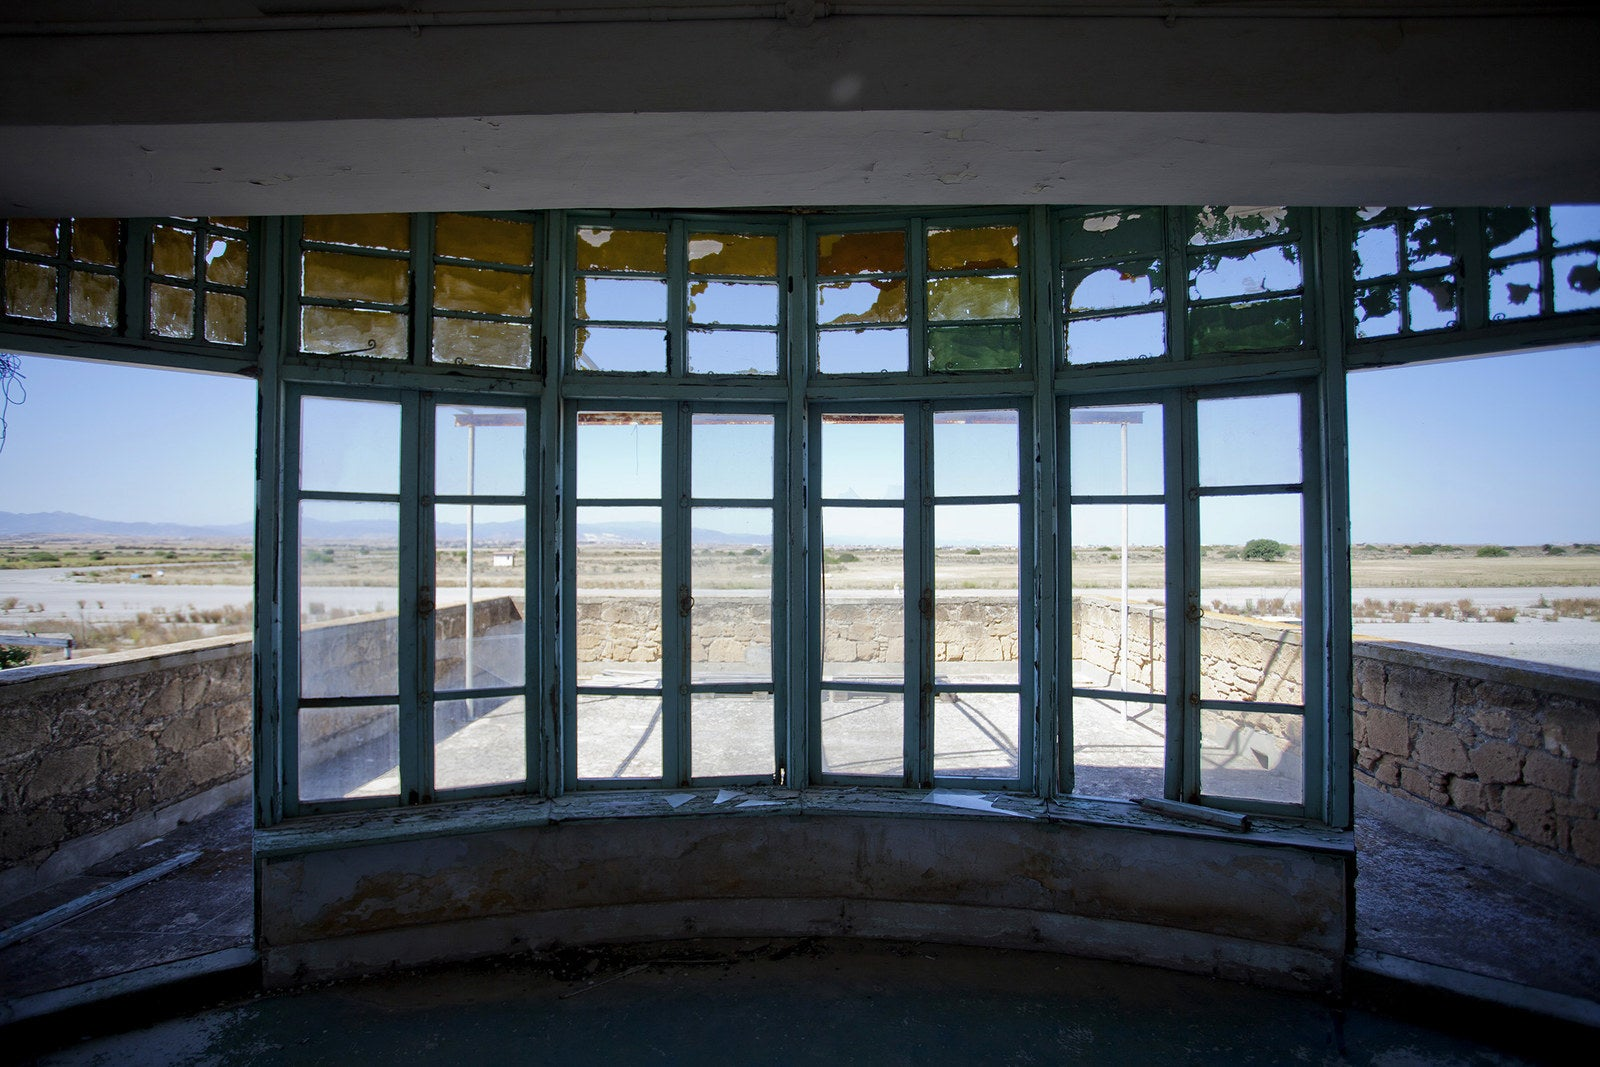 A view from the broken windows of a control tower for the runway.